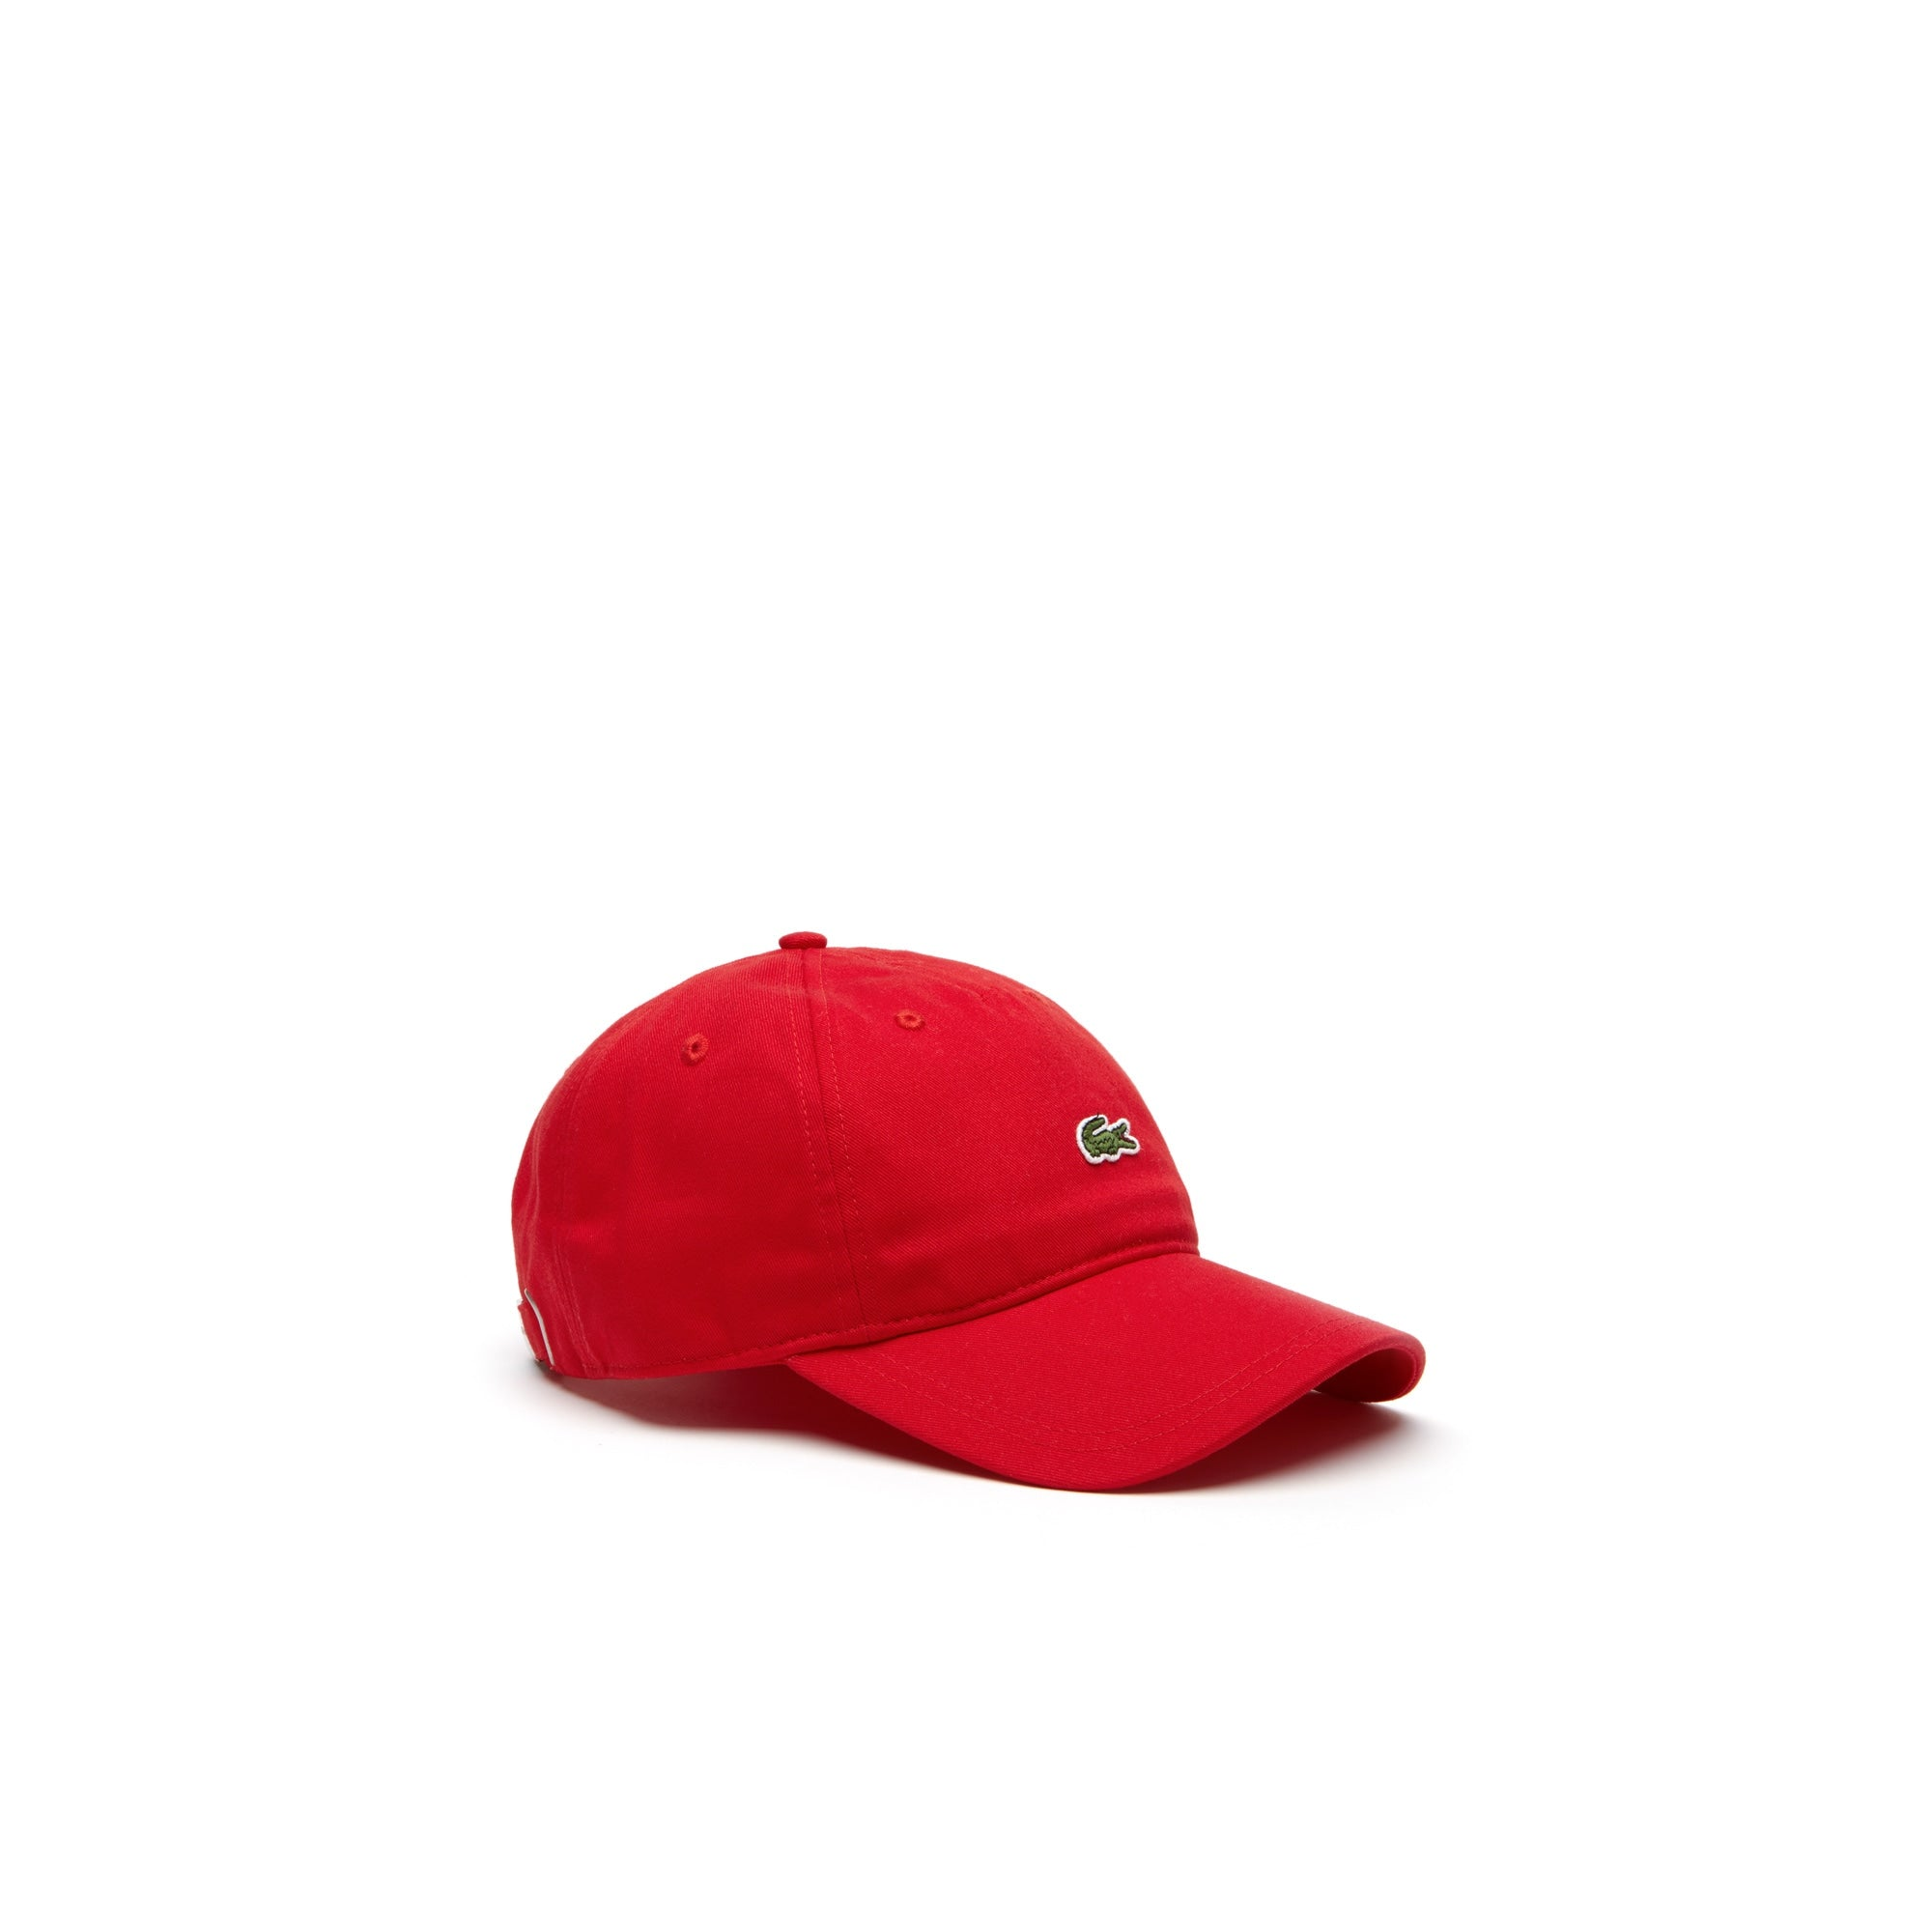 80ec74fa2 Lacoste Men's Embroidered Small Croc' Snapback Cotton Cap Hat – Shop ...